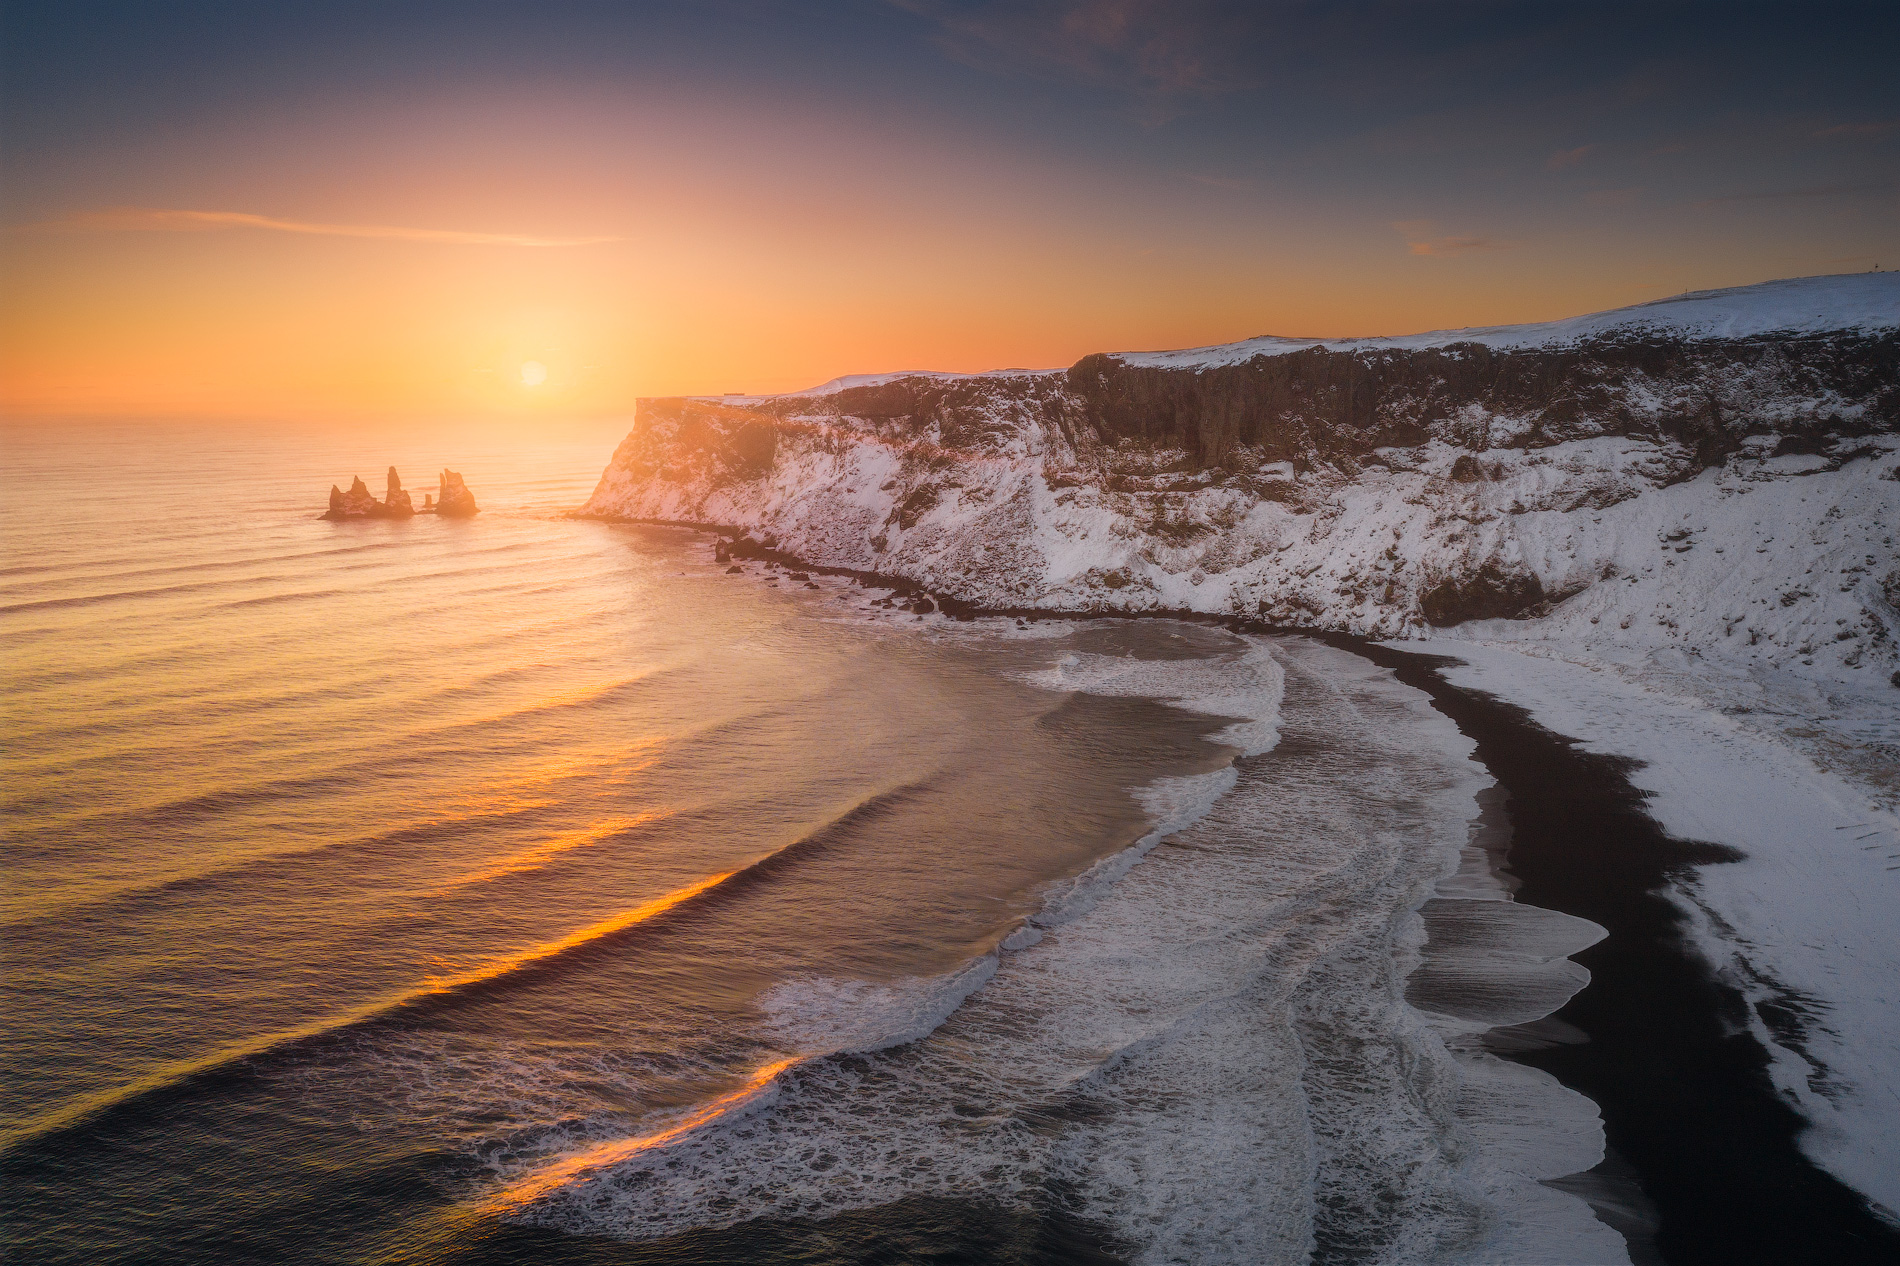 According to legend, the Reynisdrangar seastacks are meant to be greedy trolls petrified by the sunlight.